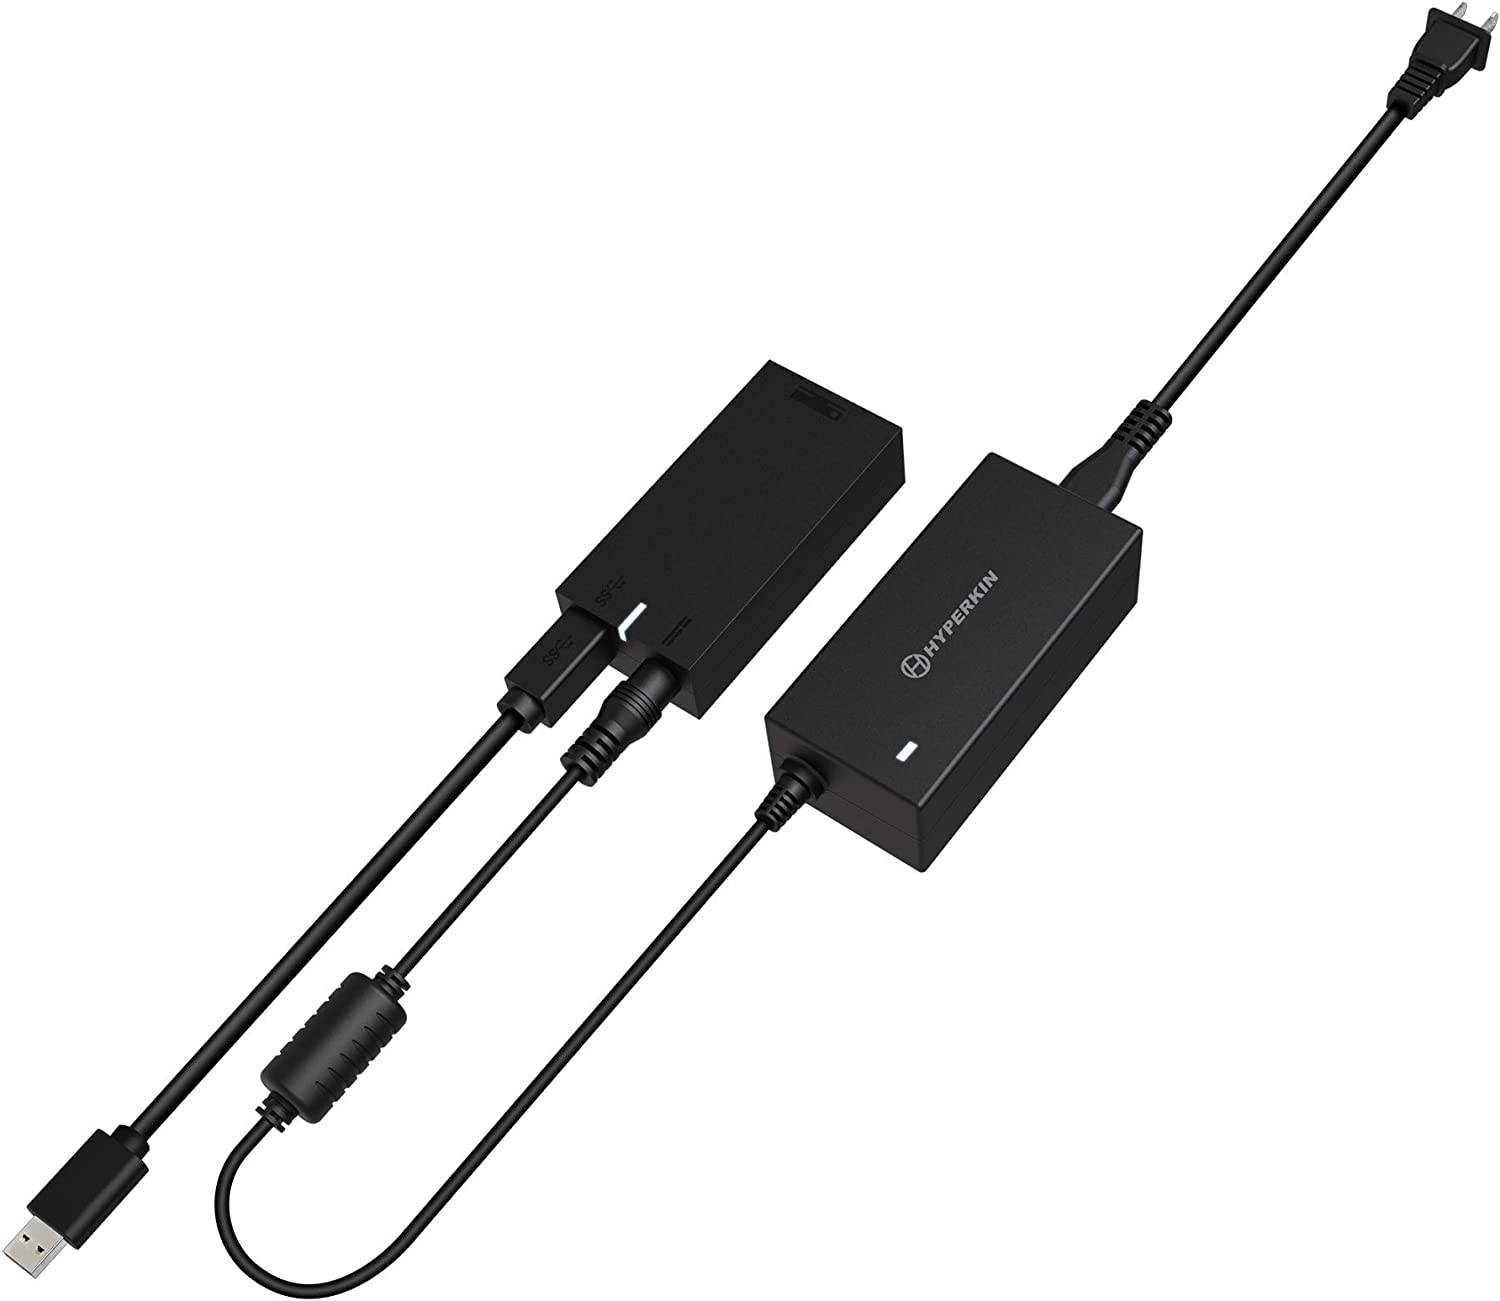 Officially Licensed By Xbox Xbox One and Windows 10 PCs Xbox One X Hyperkin Kinect Converter Adapter for Xbox One S